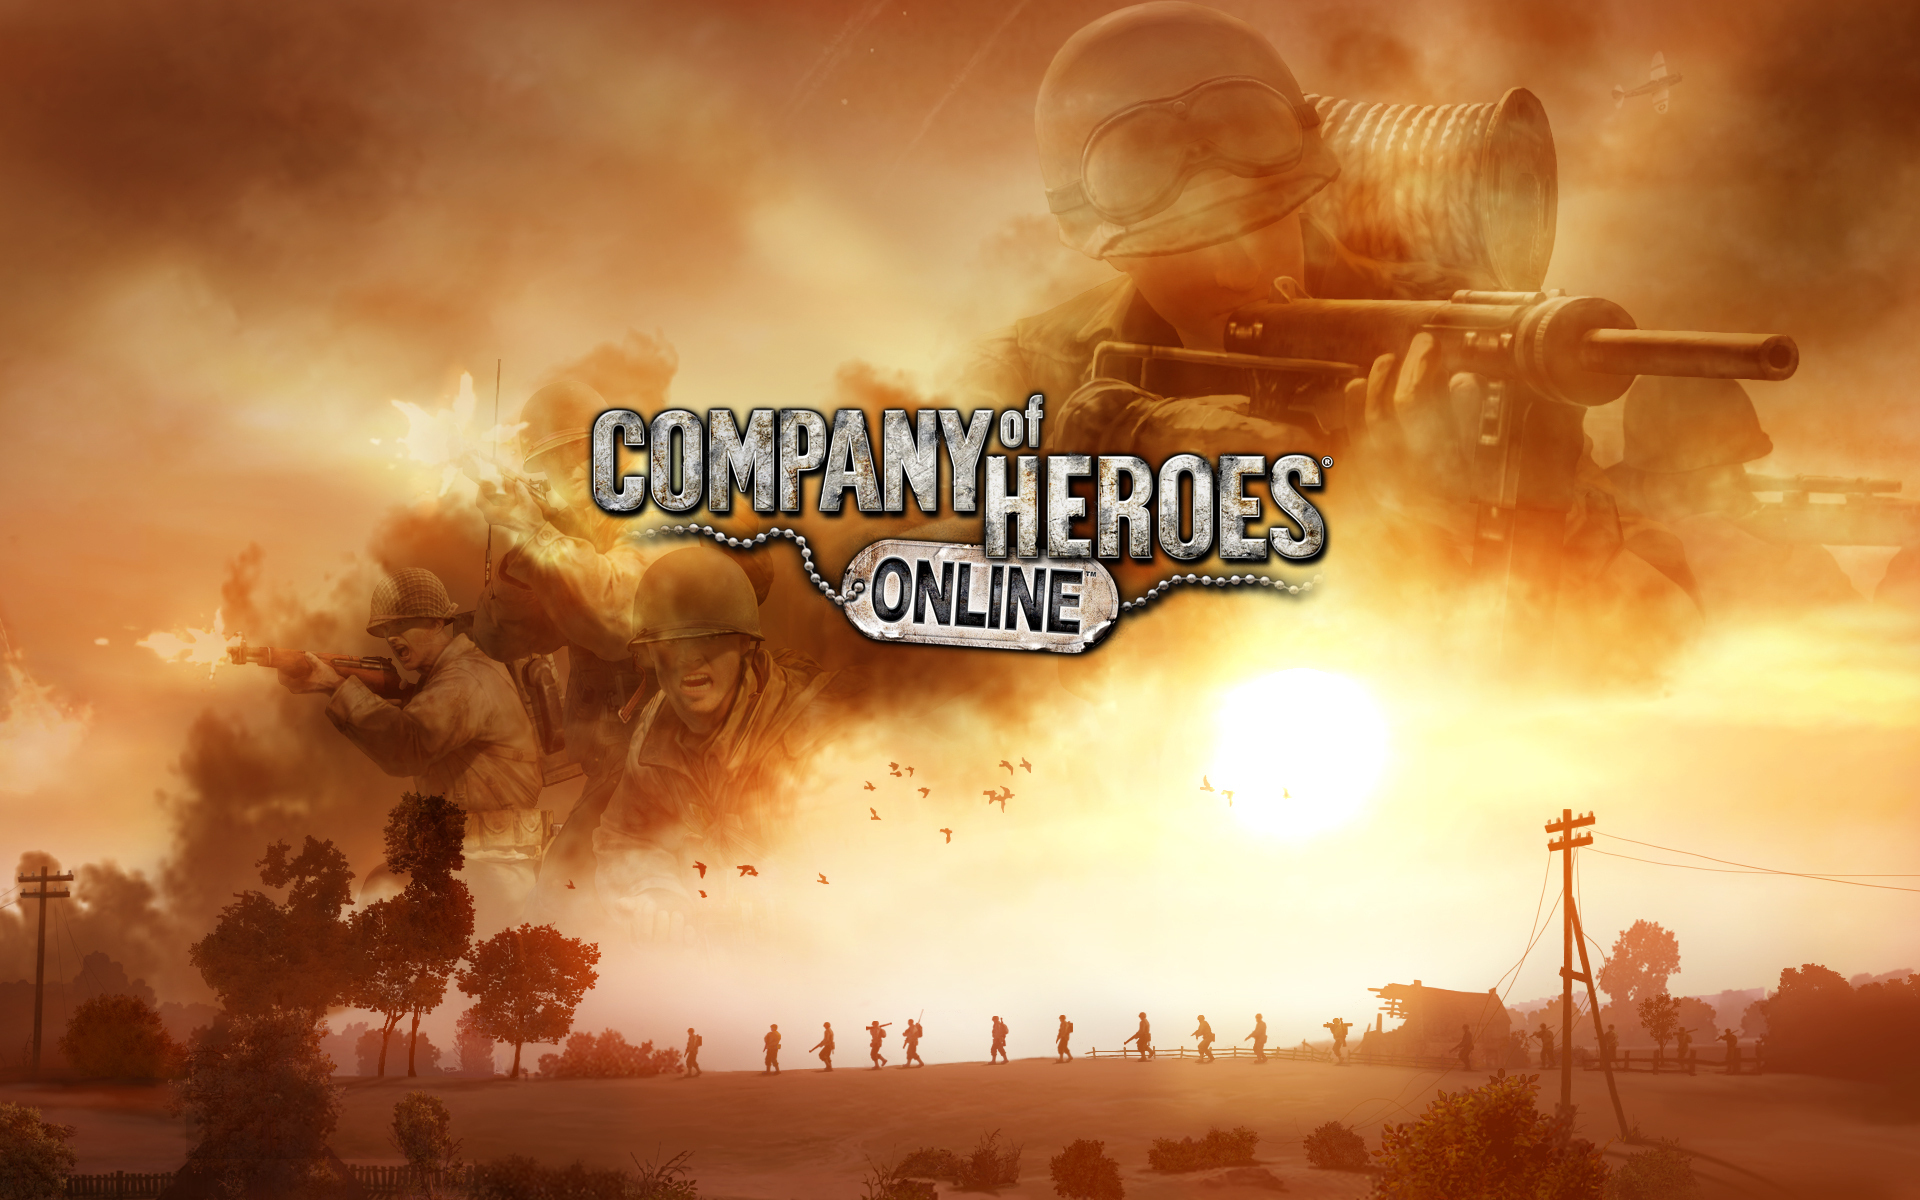 Company of heroes online images company of heroes online for The wallpaper company